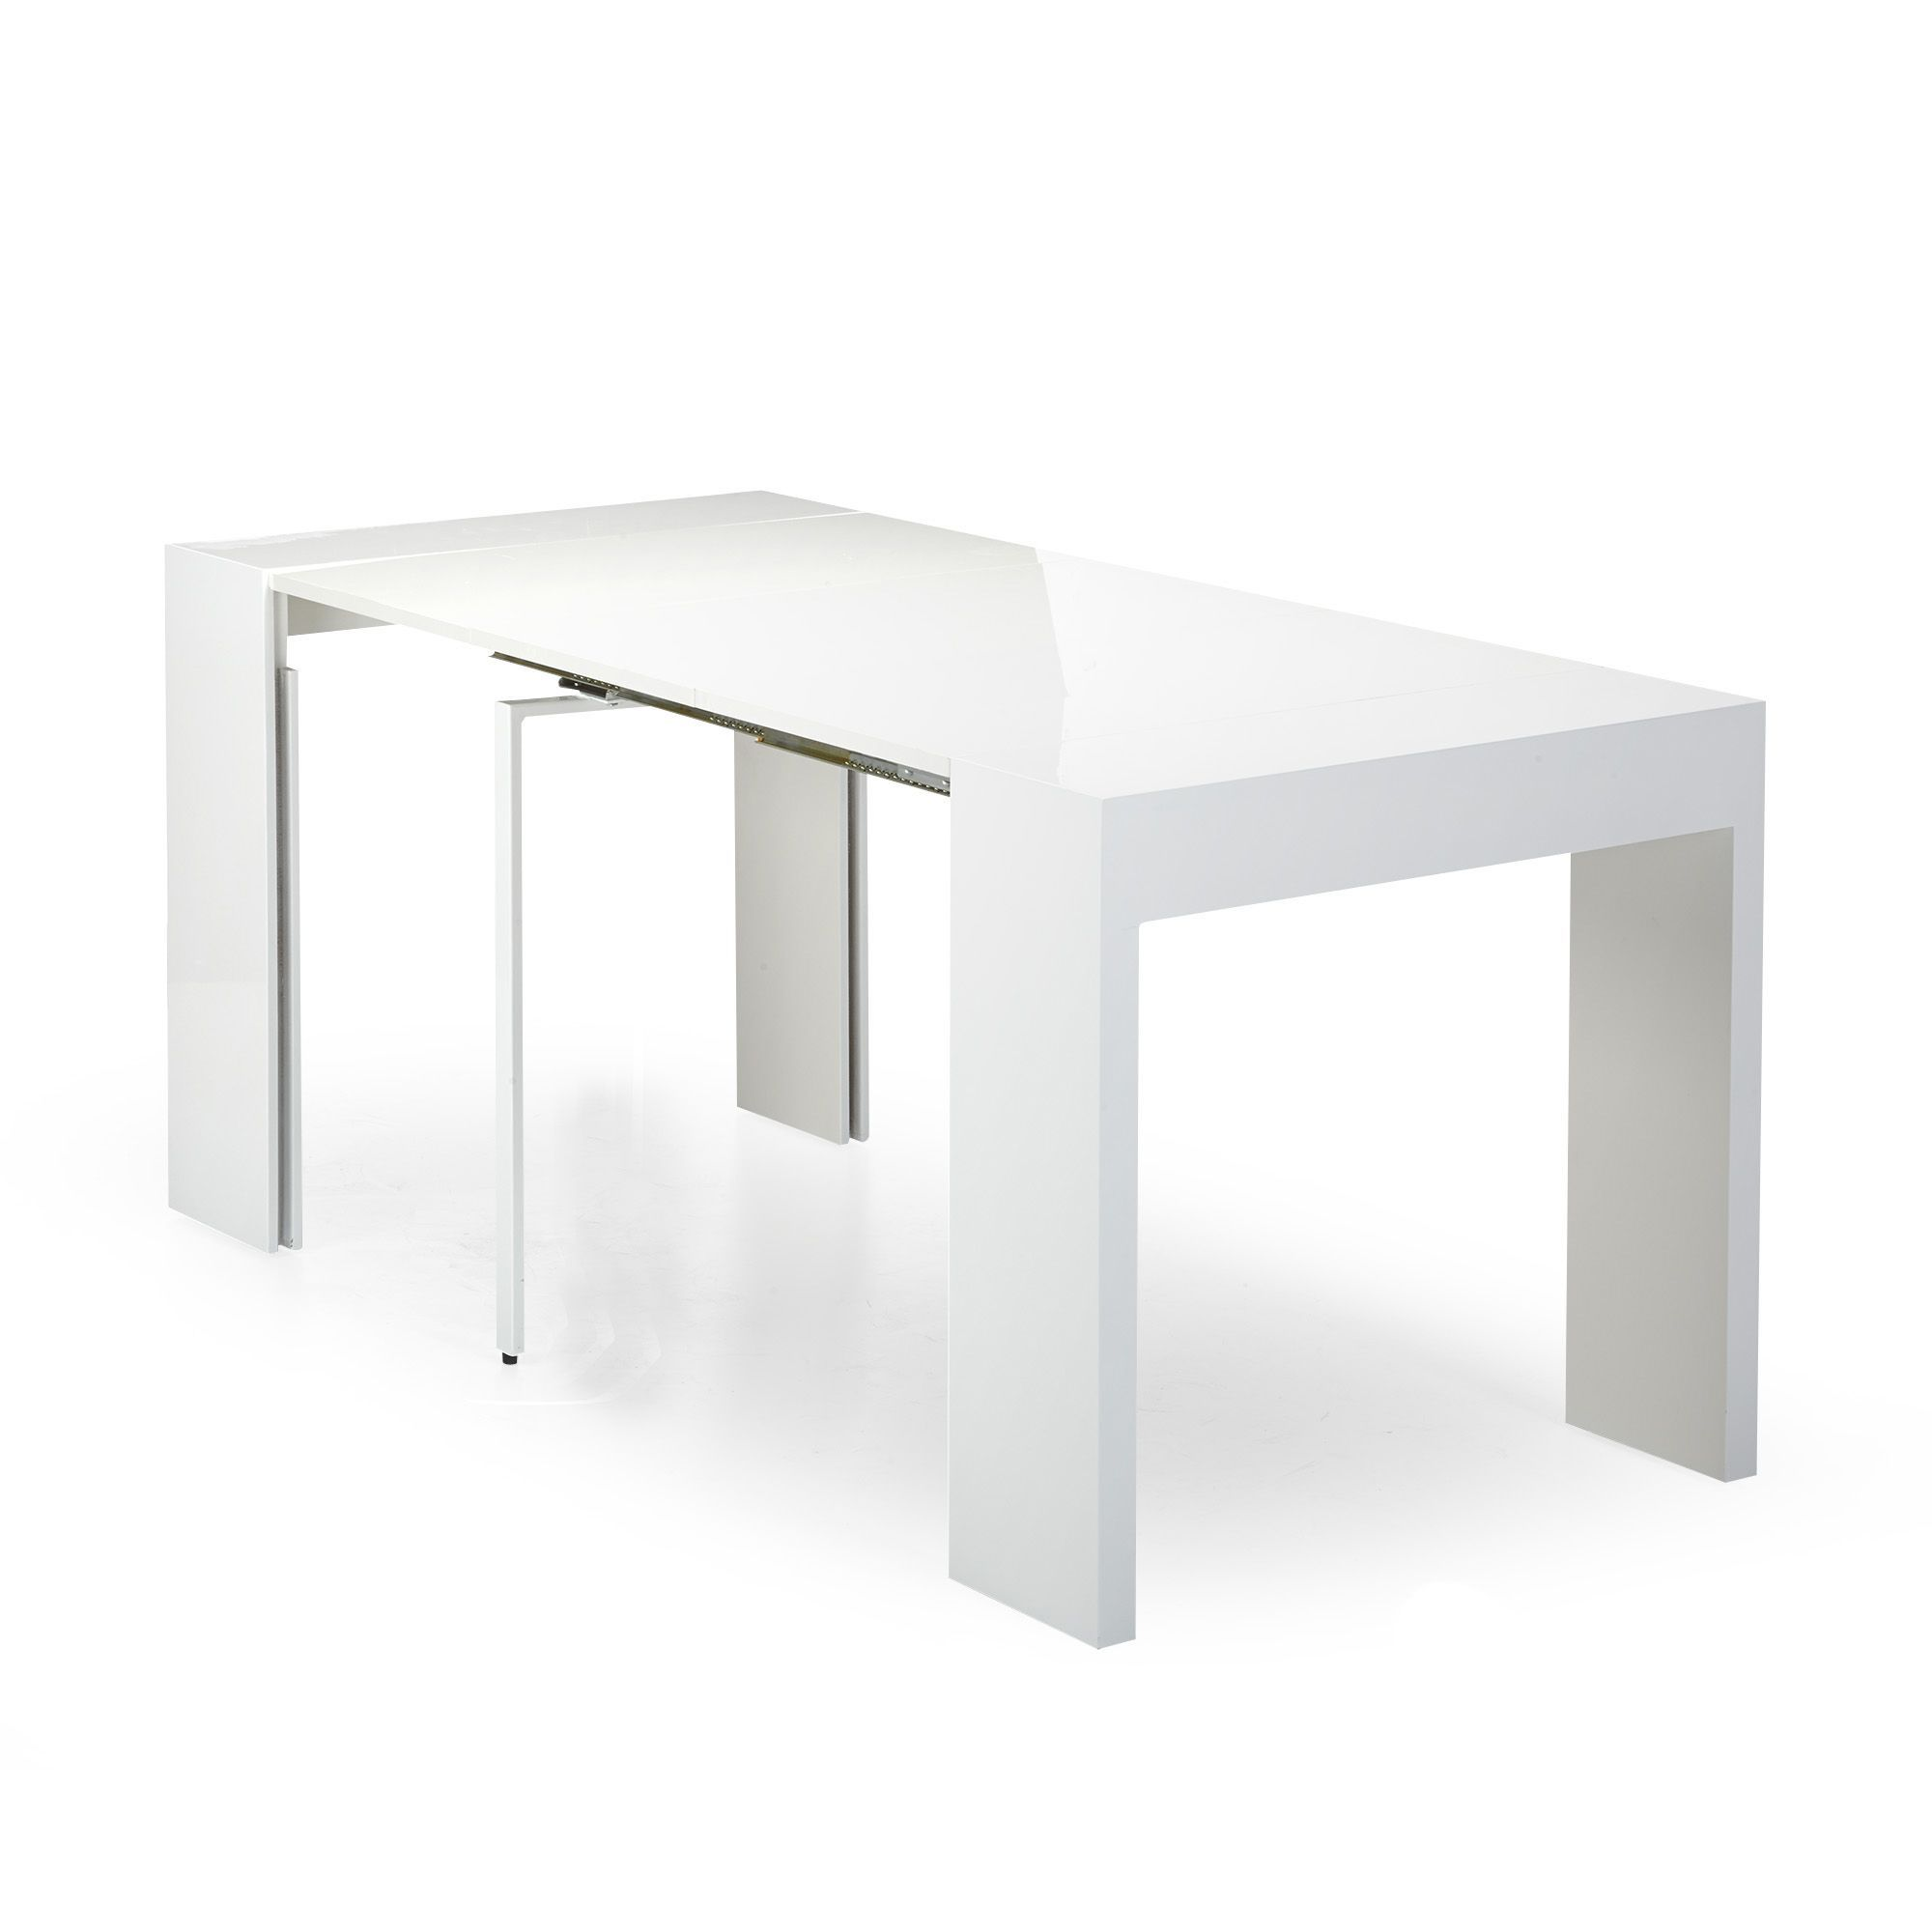 Table console blanche L37-197cm - Speed - Consoles-Consoles, Tables ...